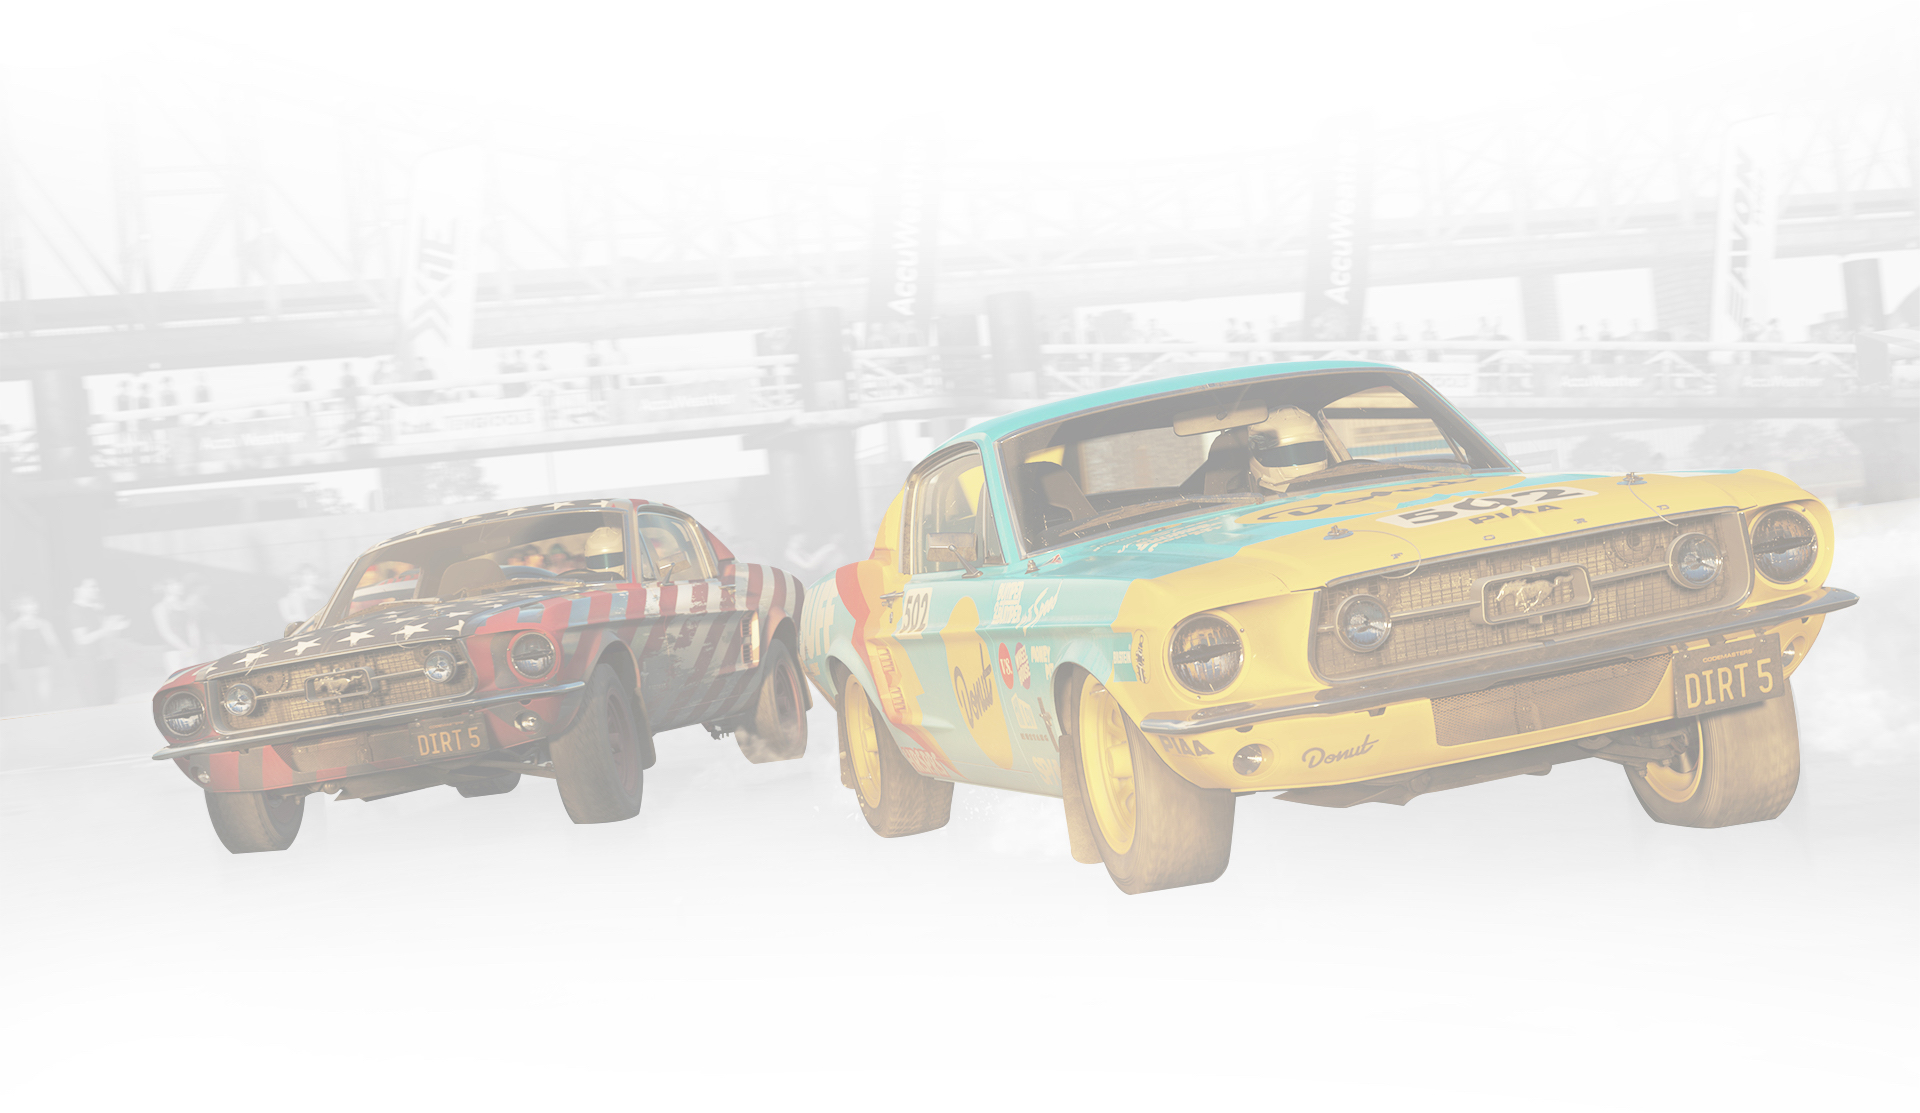 DIRT 5. Due Ford Mustang corrono sotto un cavalcavia.